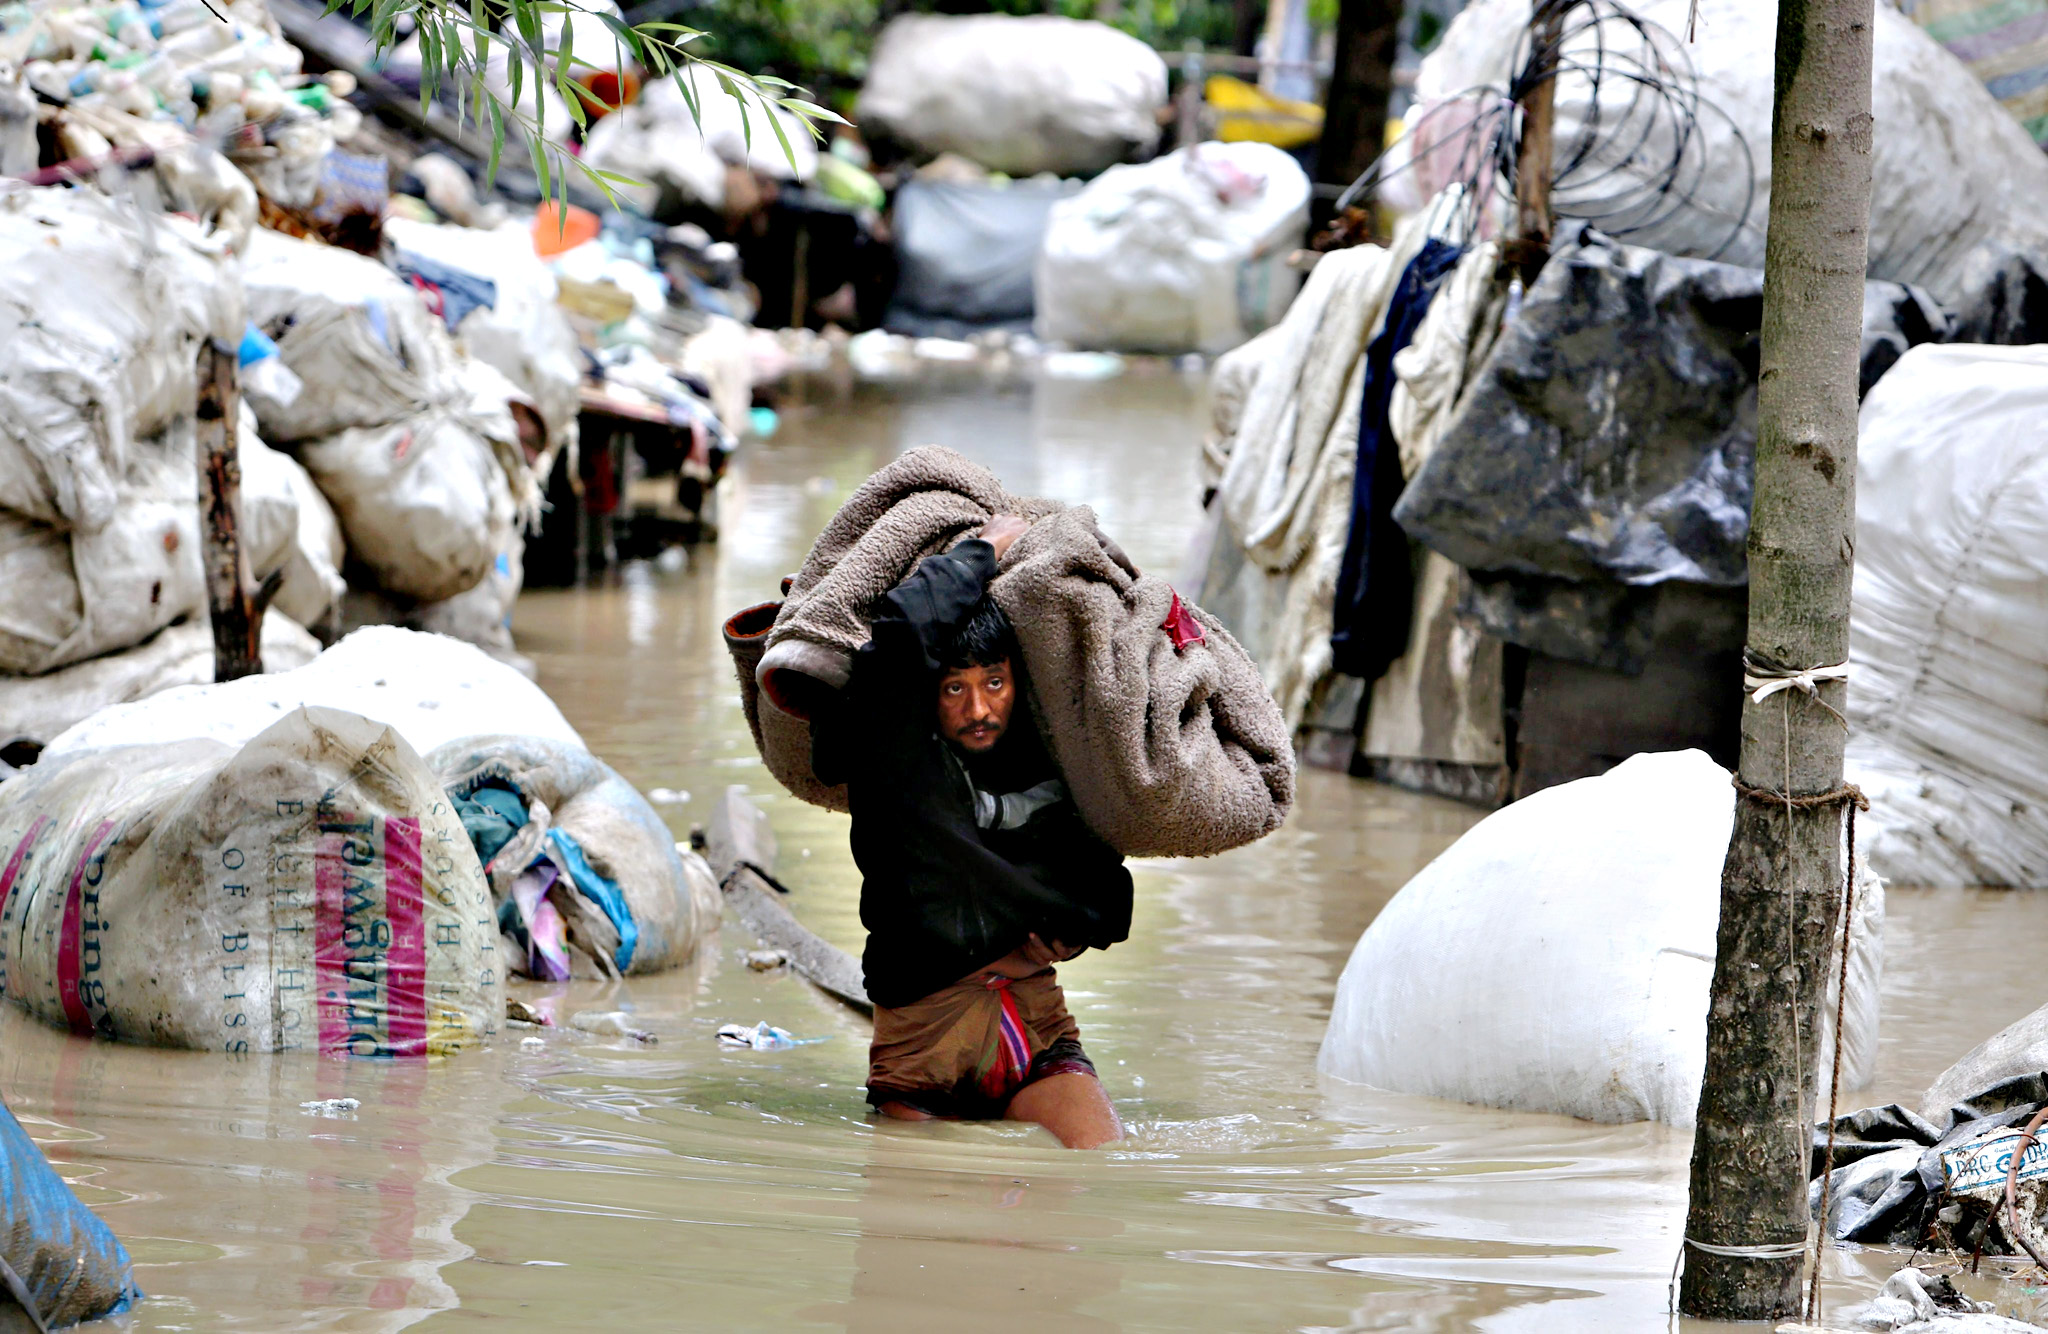 An Indian rag picker carrying goods wades a water logged area after breach in River Jheluml in Srinagar, summer capital of Indian Kashmir, 25 June 2015. A flood alert was sounded in Jammu and Kashmir state on 25 June after the Jhelum and other rivers rose beyond their danger levels.